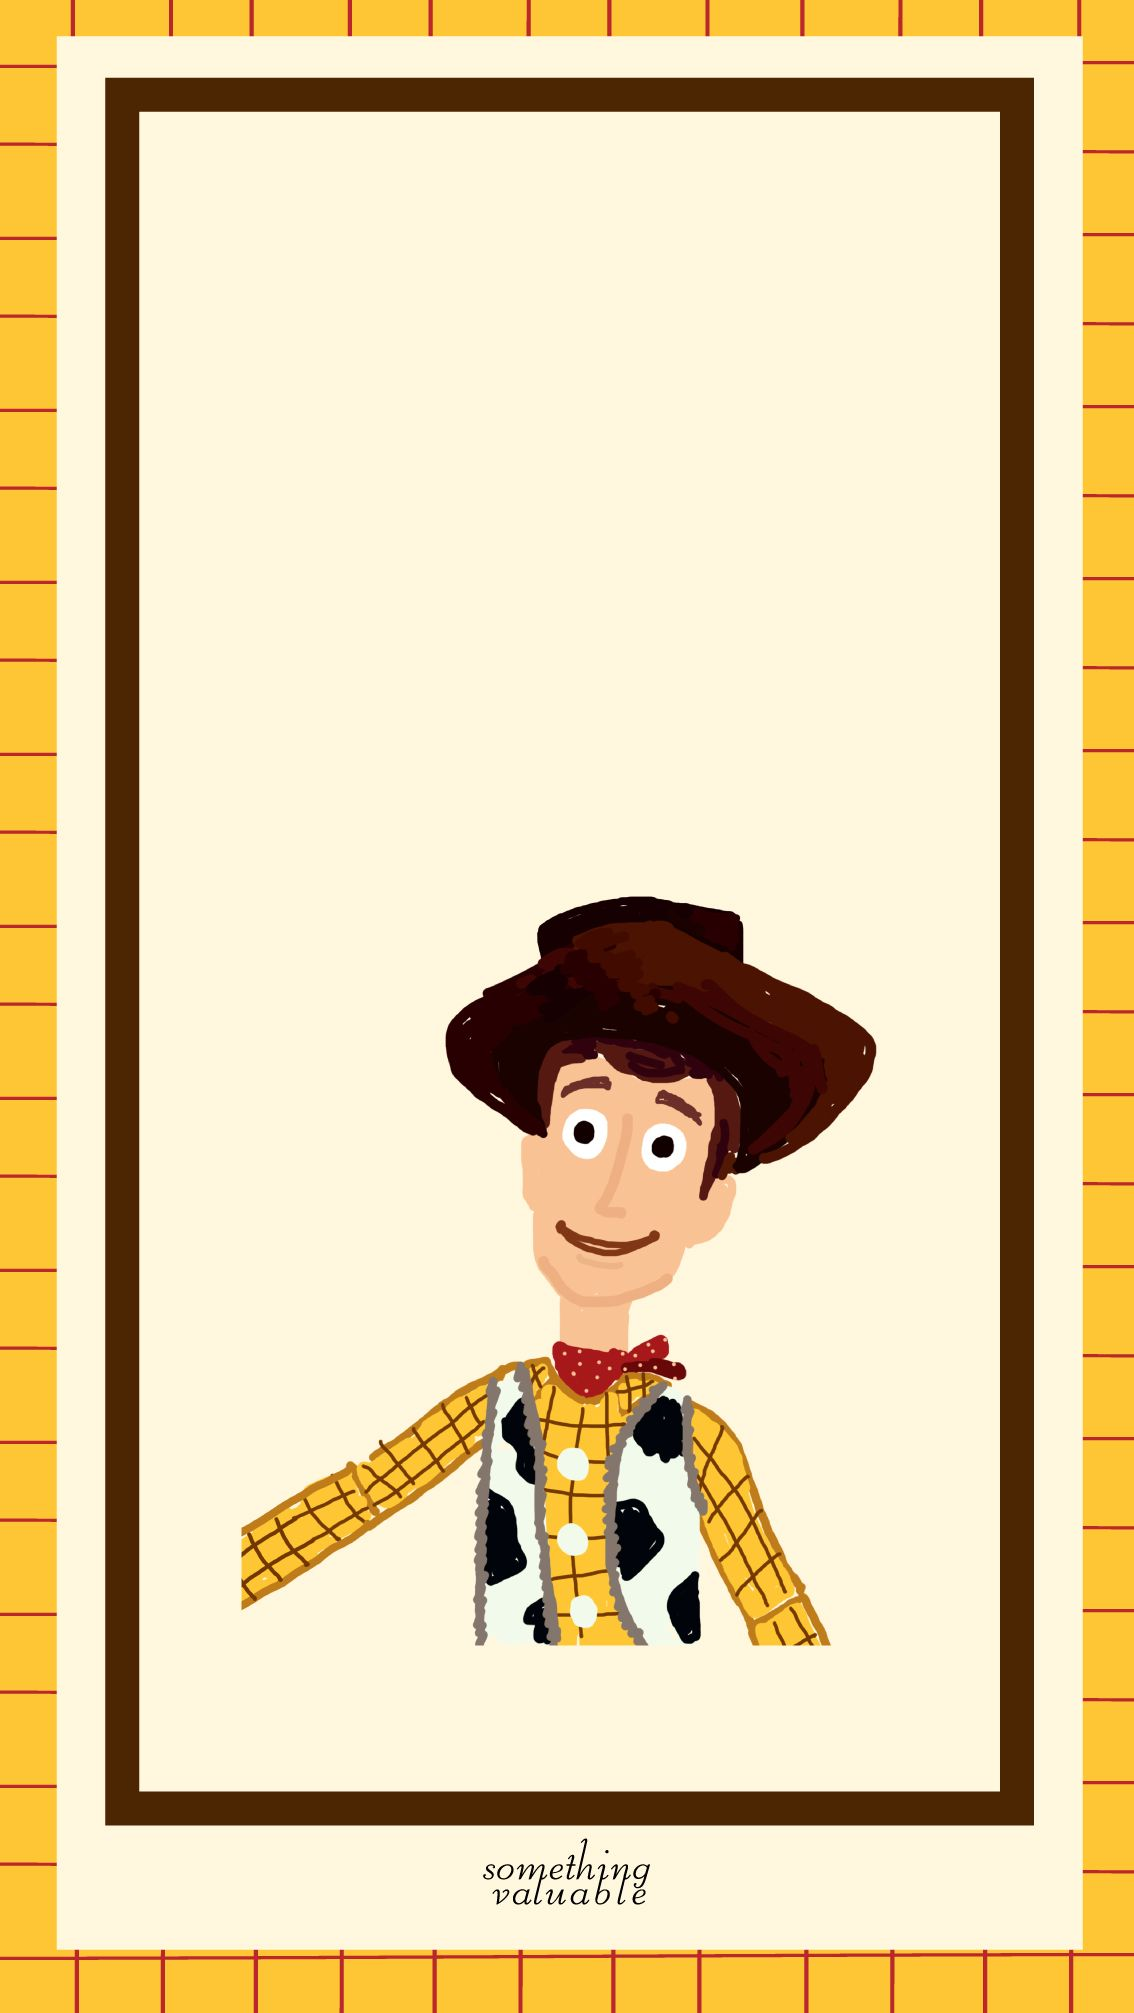 iPhone wallpaper design • toystory woody • http//blog